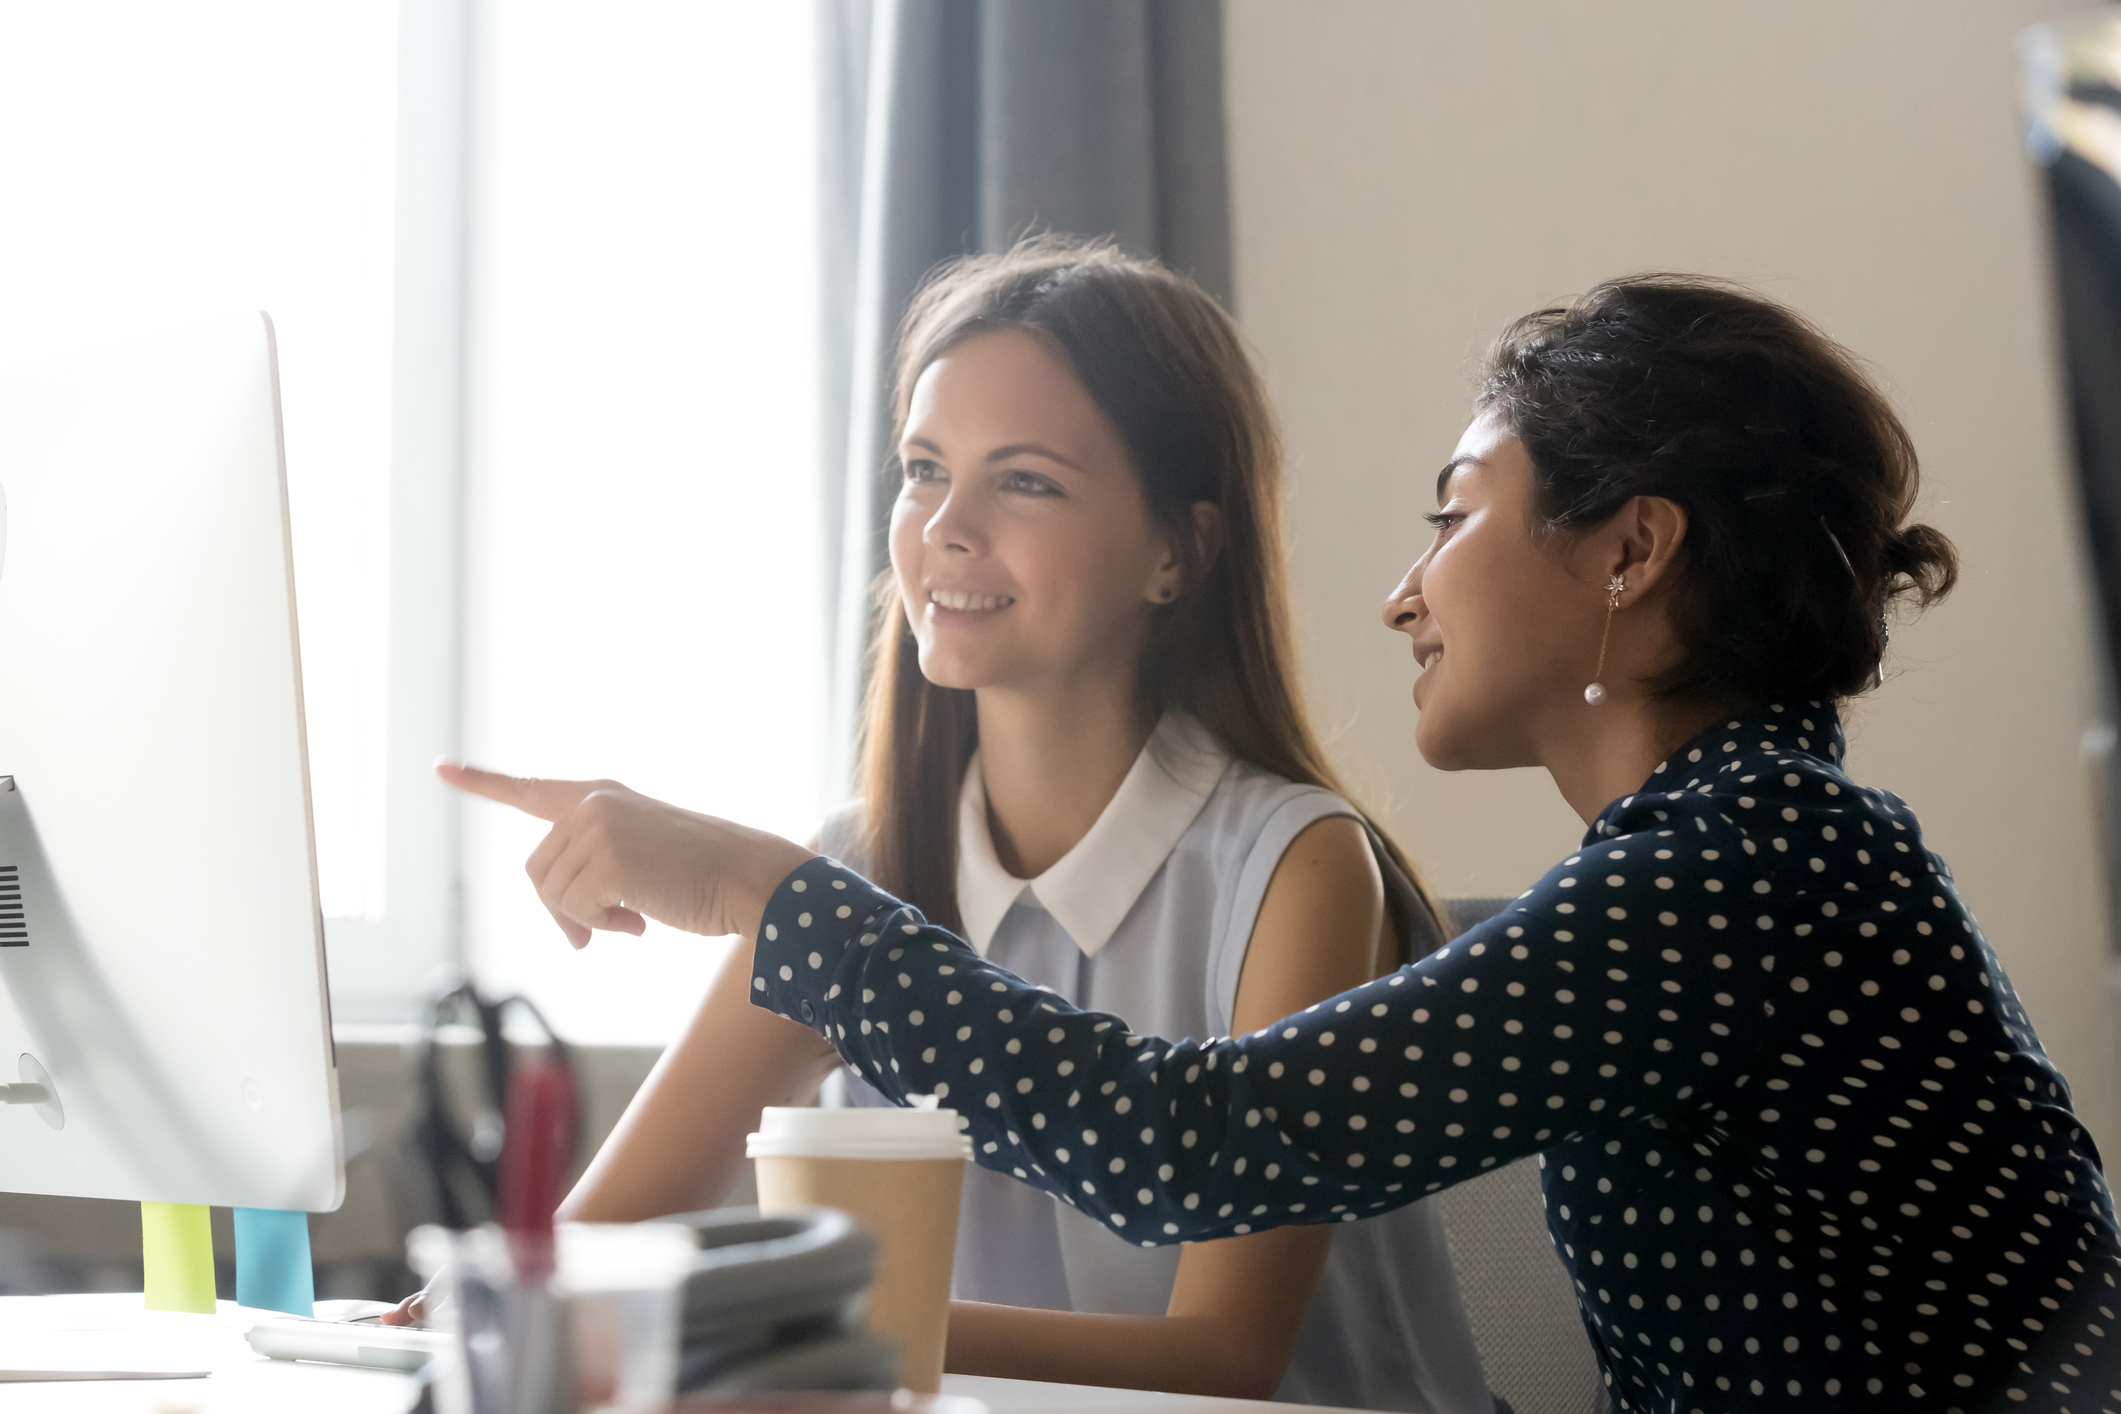 A woman mentoring a younger woman and pointing at computer.